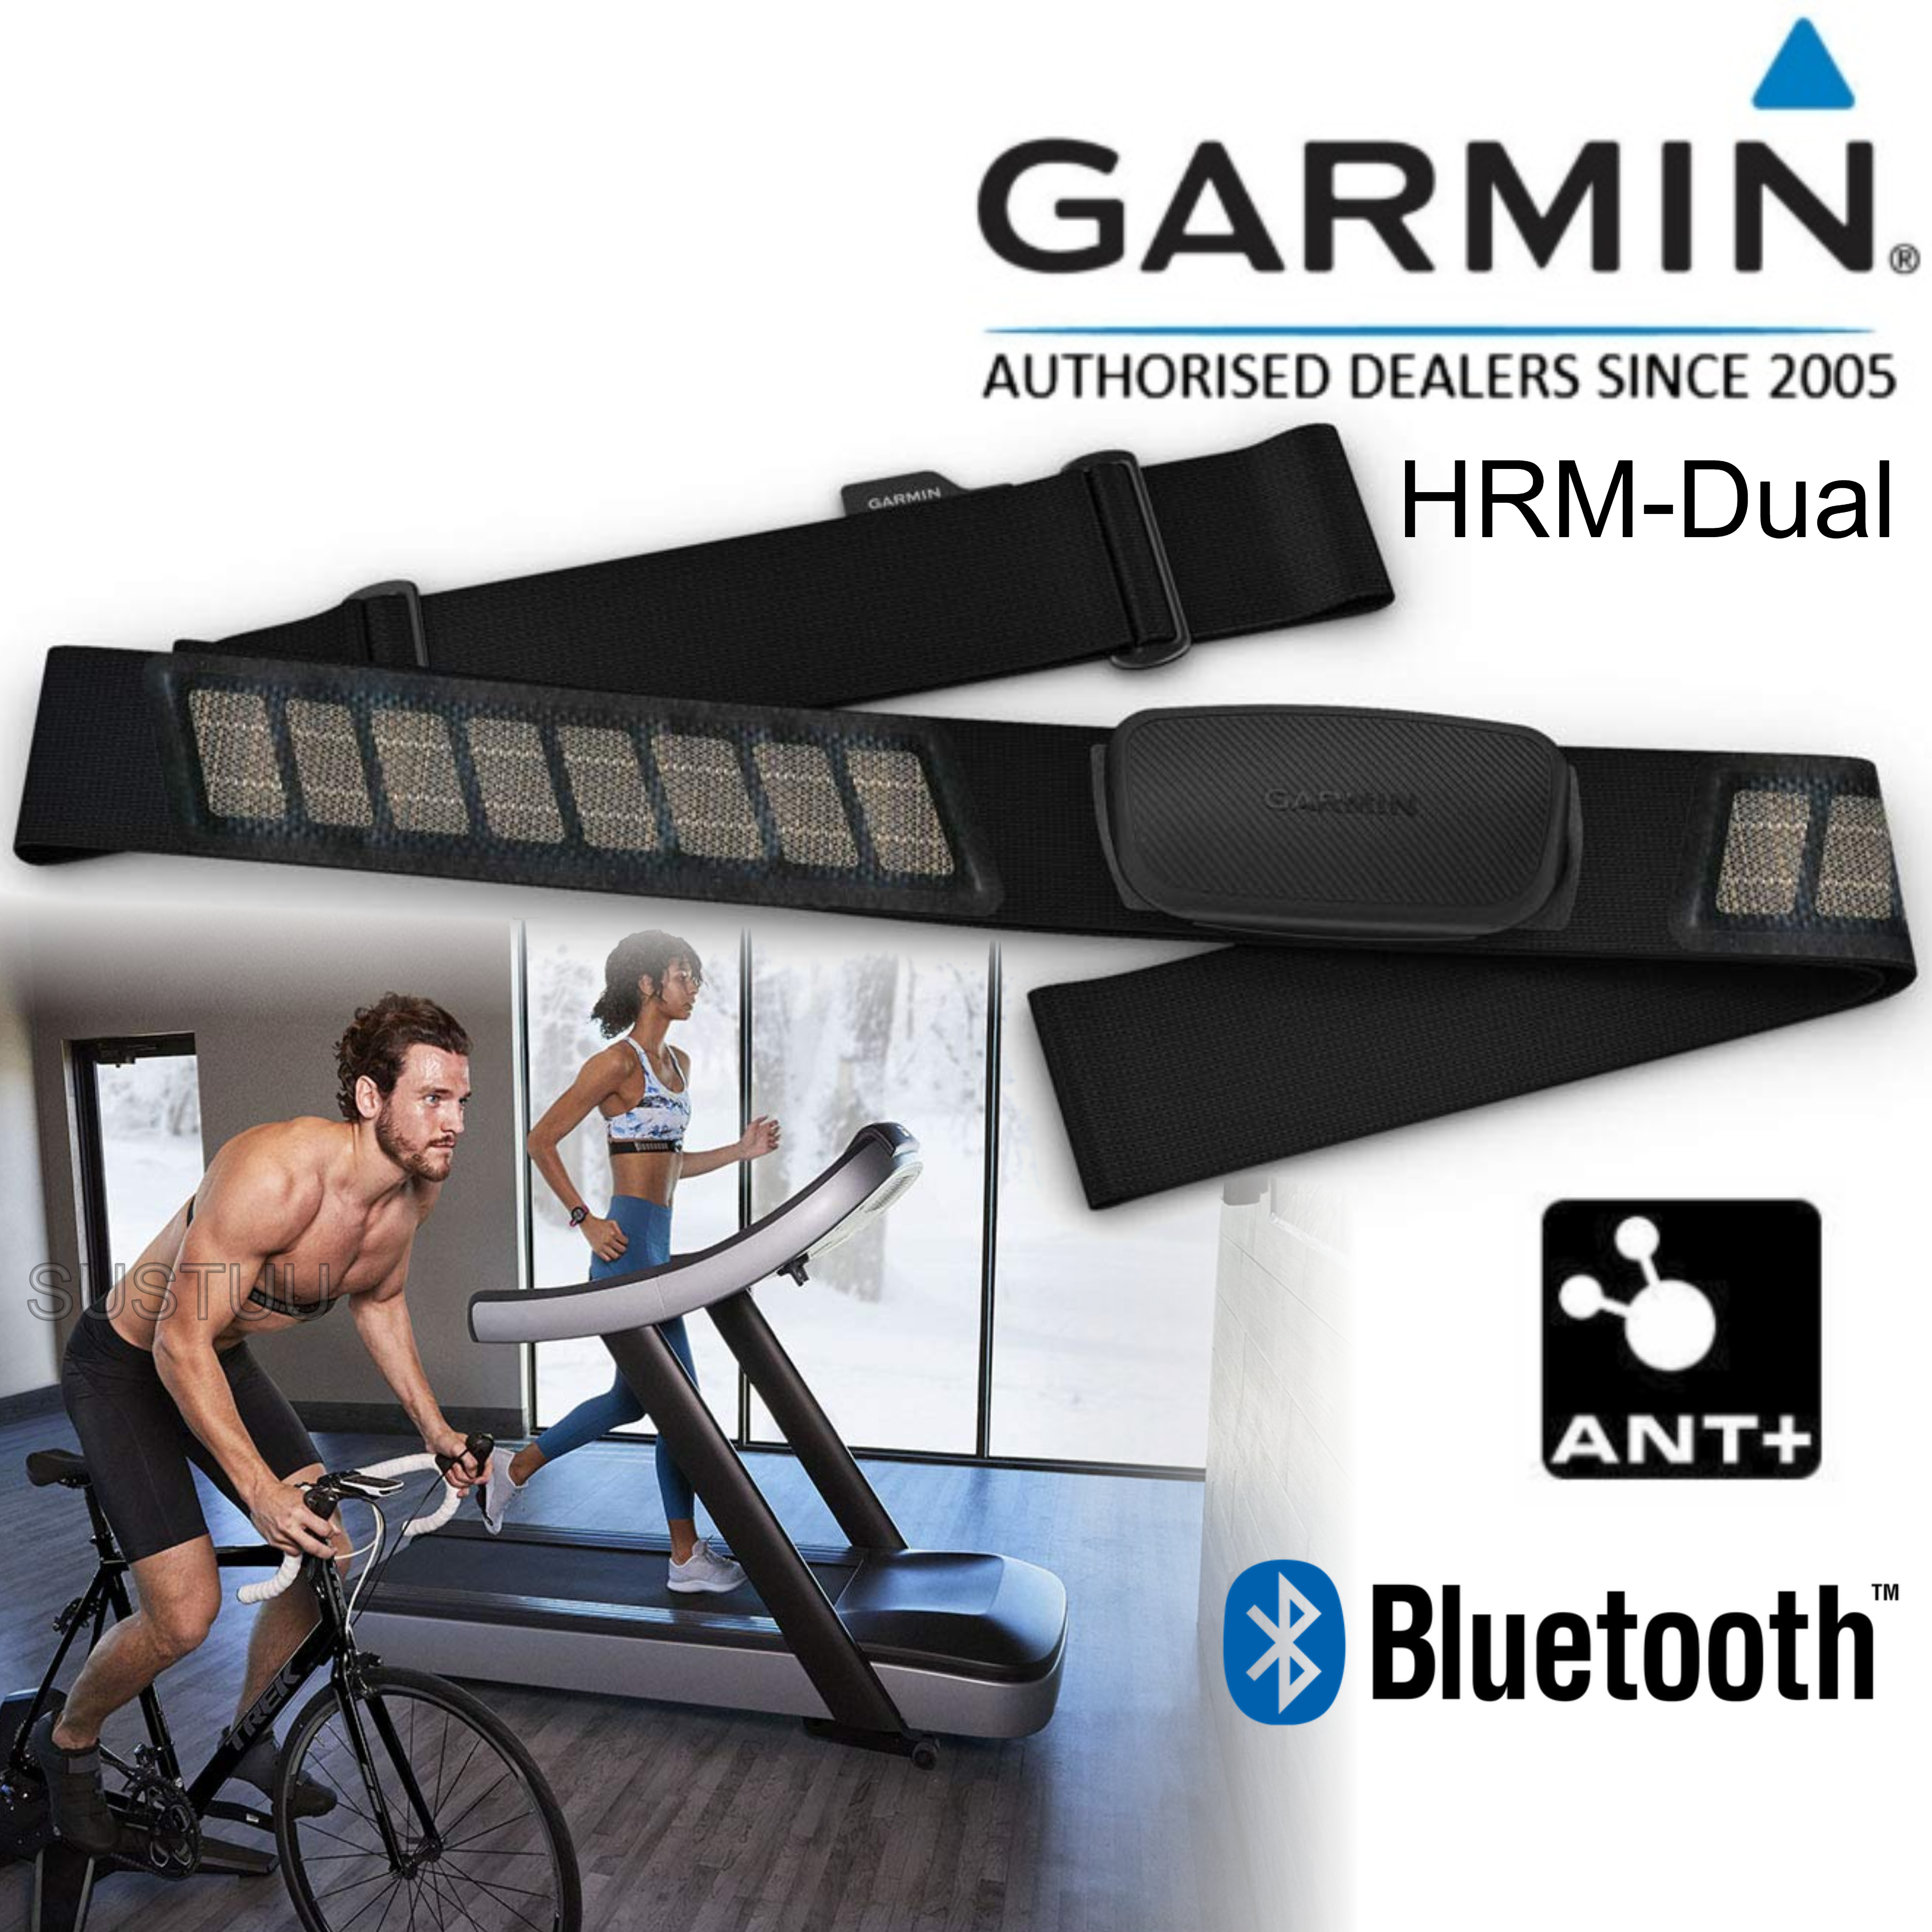 Garmin HRM-Dual | Heart Rate Monitor Strap | For Forerunner 735XT/910XT/920XT/935